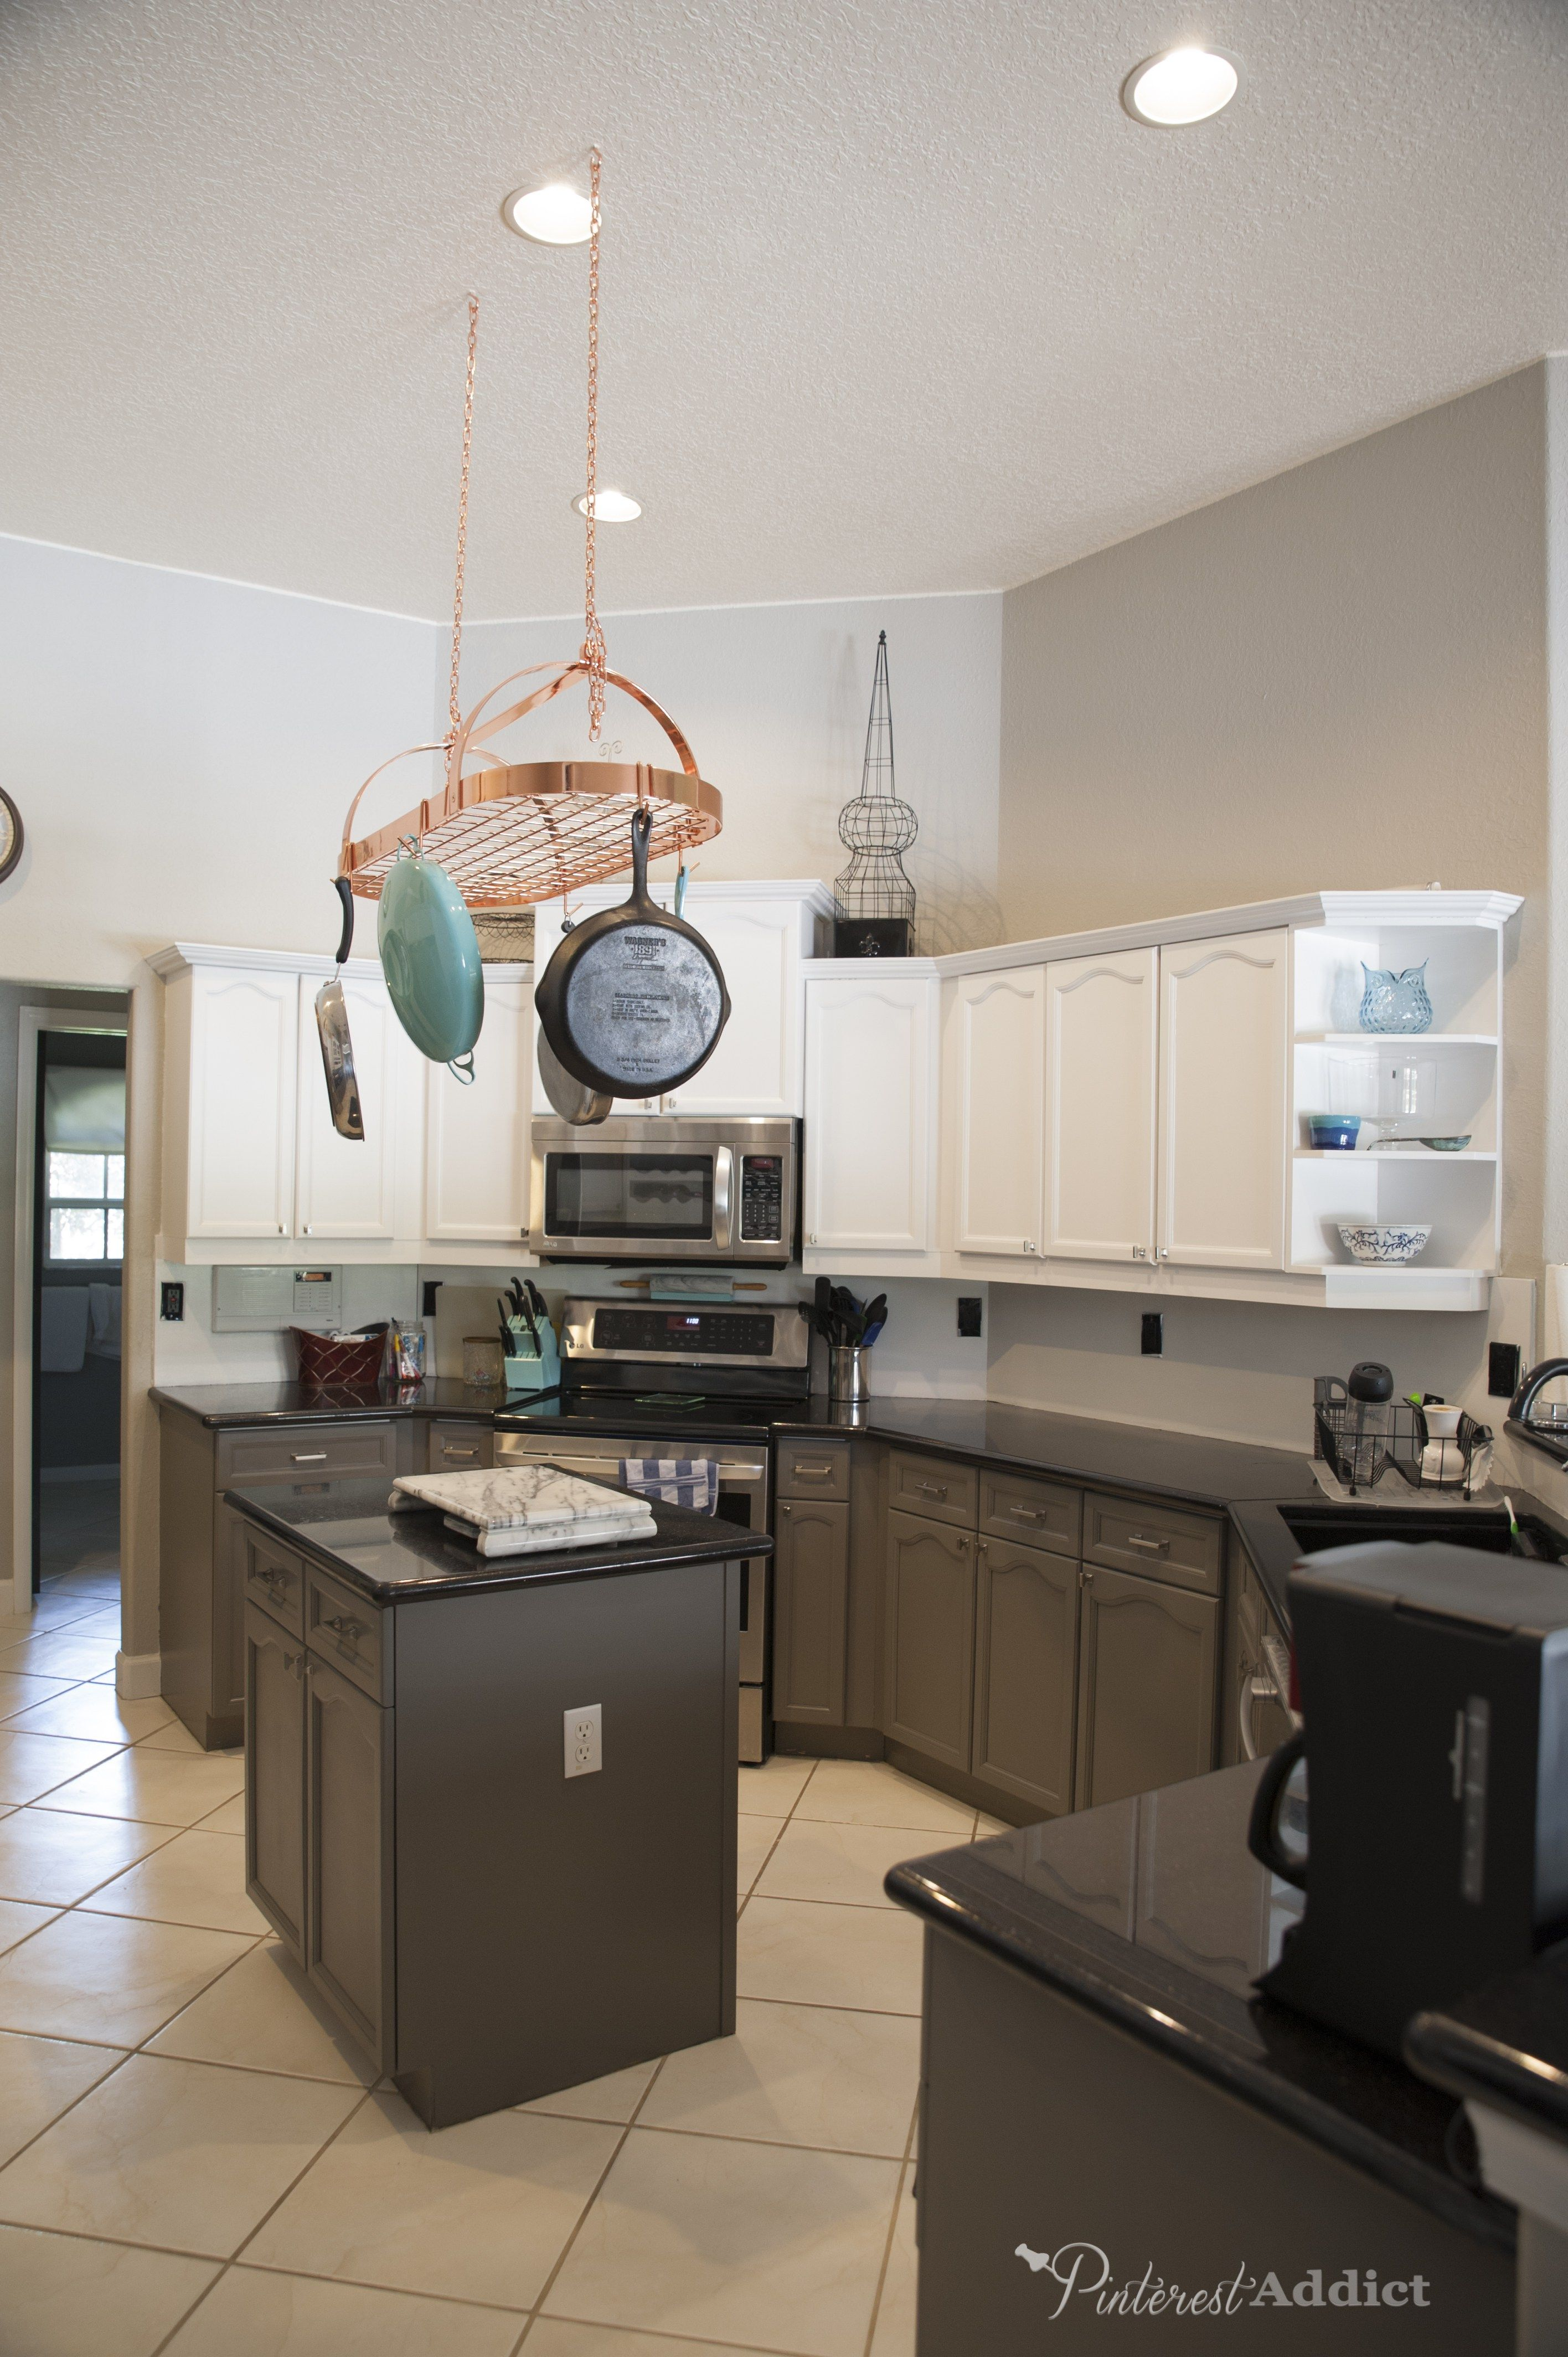 painting the kitchen cabinets building the cottage finally rh pinterest com